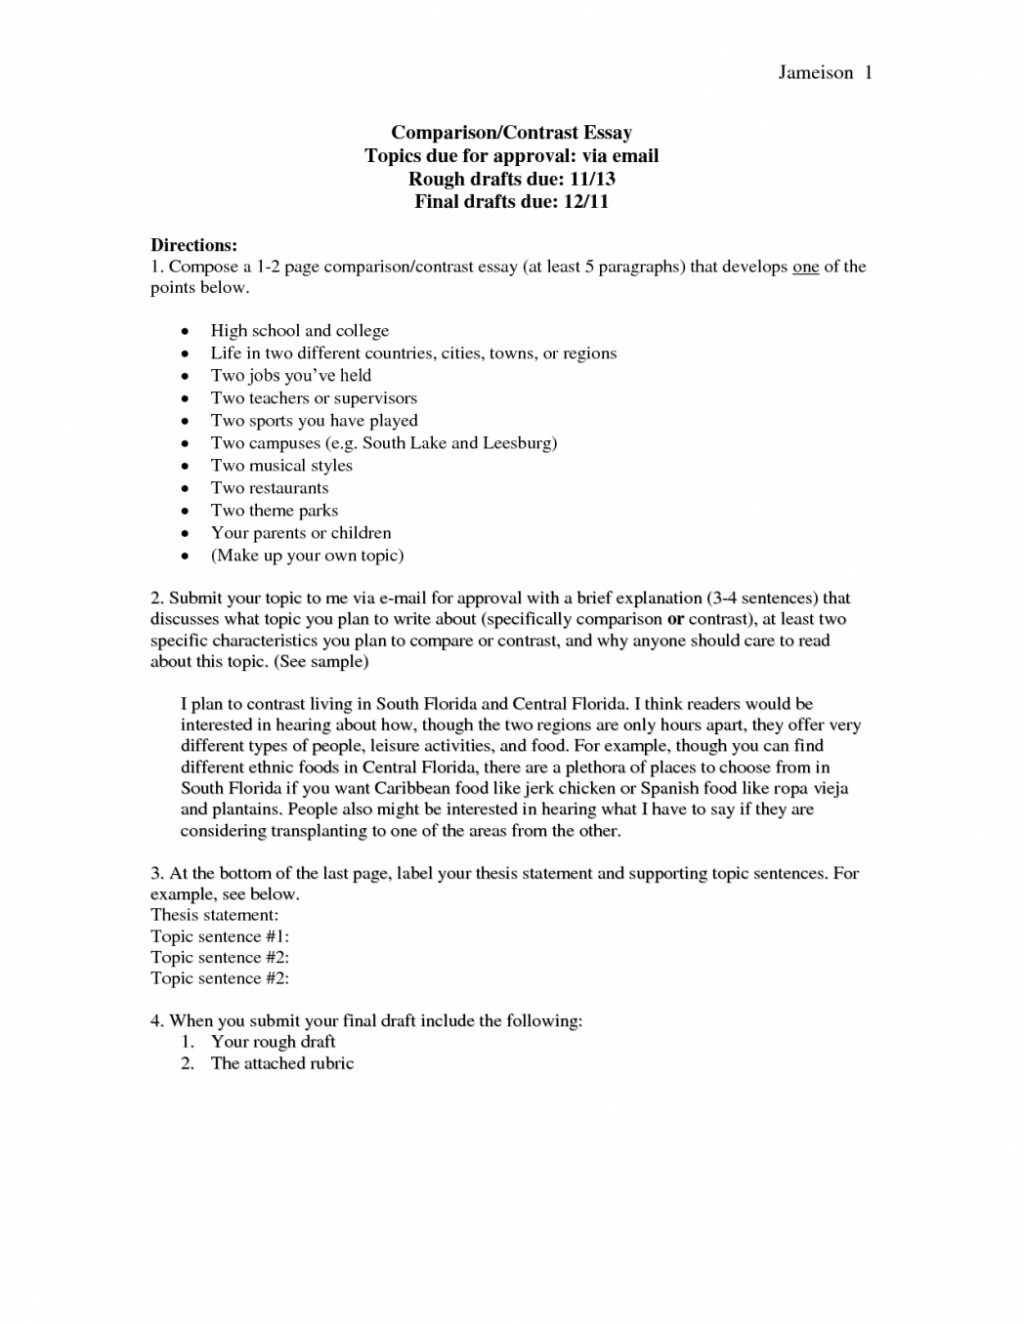 006 Compare And Contrast Essay Of High School College Practice Comparison Vs Lifes For Best Pho 1048x1356 Topics Students Beautiful Large